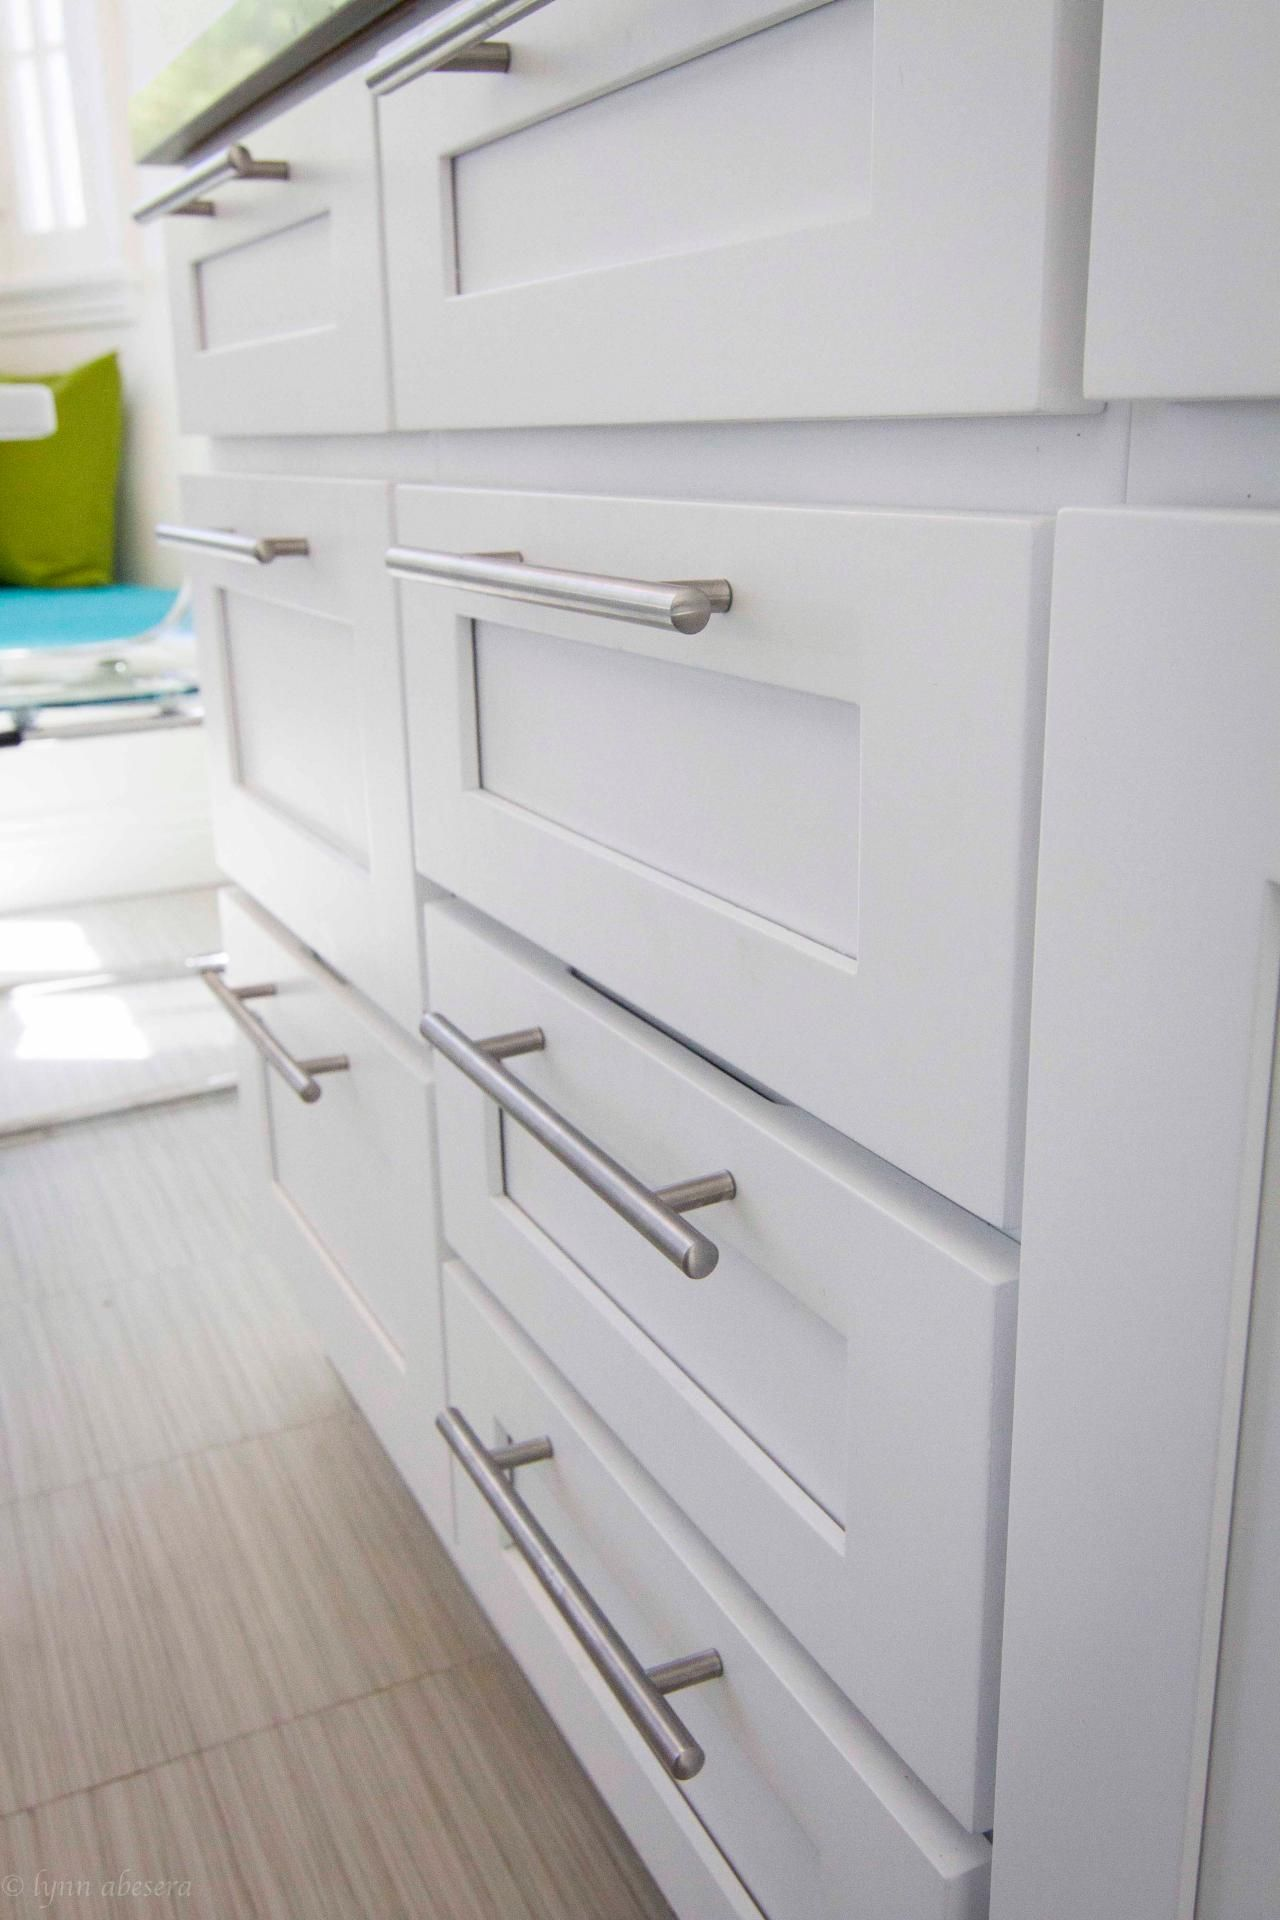 The nickel drawer pulls add to the linear lines of this clean and